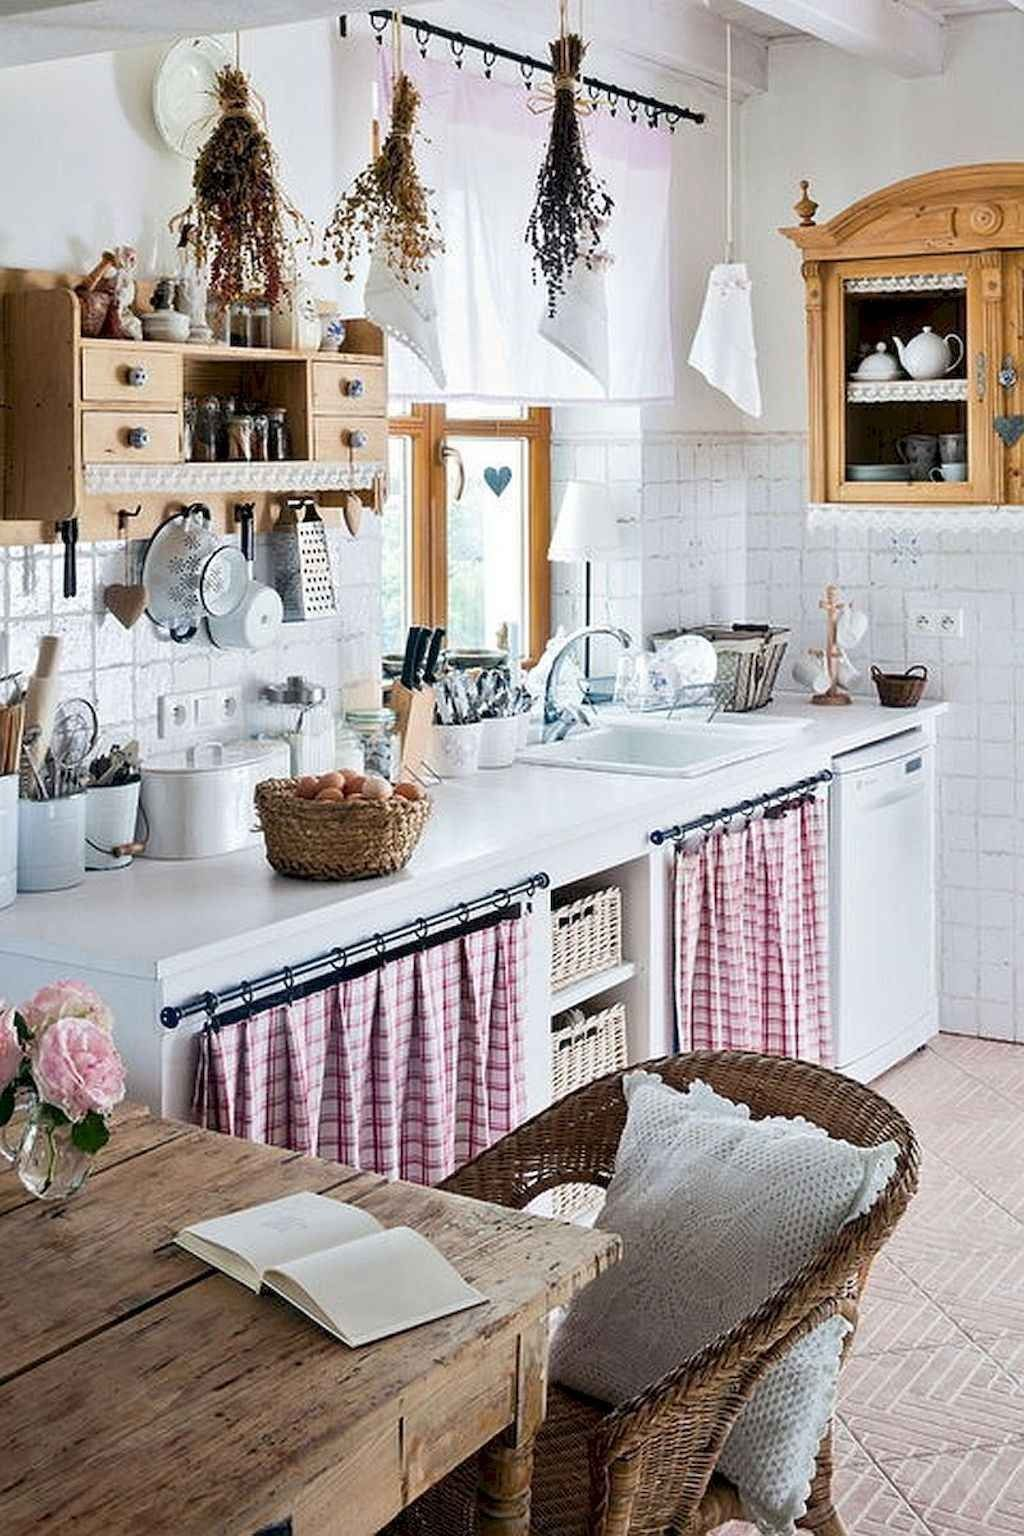 pin by catherine munds on ideas for the house in 2020 farmhouse kitchen curtains country on farmhouse kitchen valance ideas id=27012